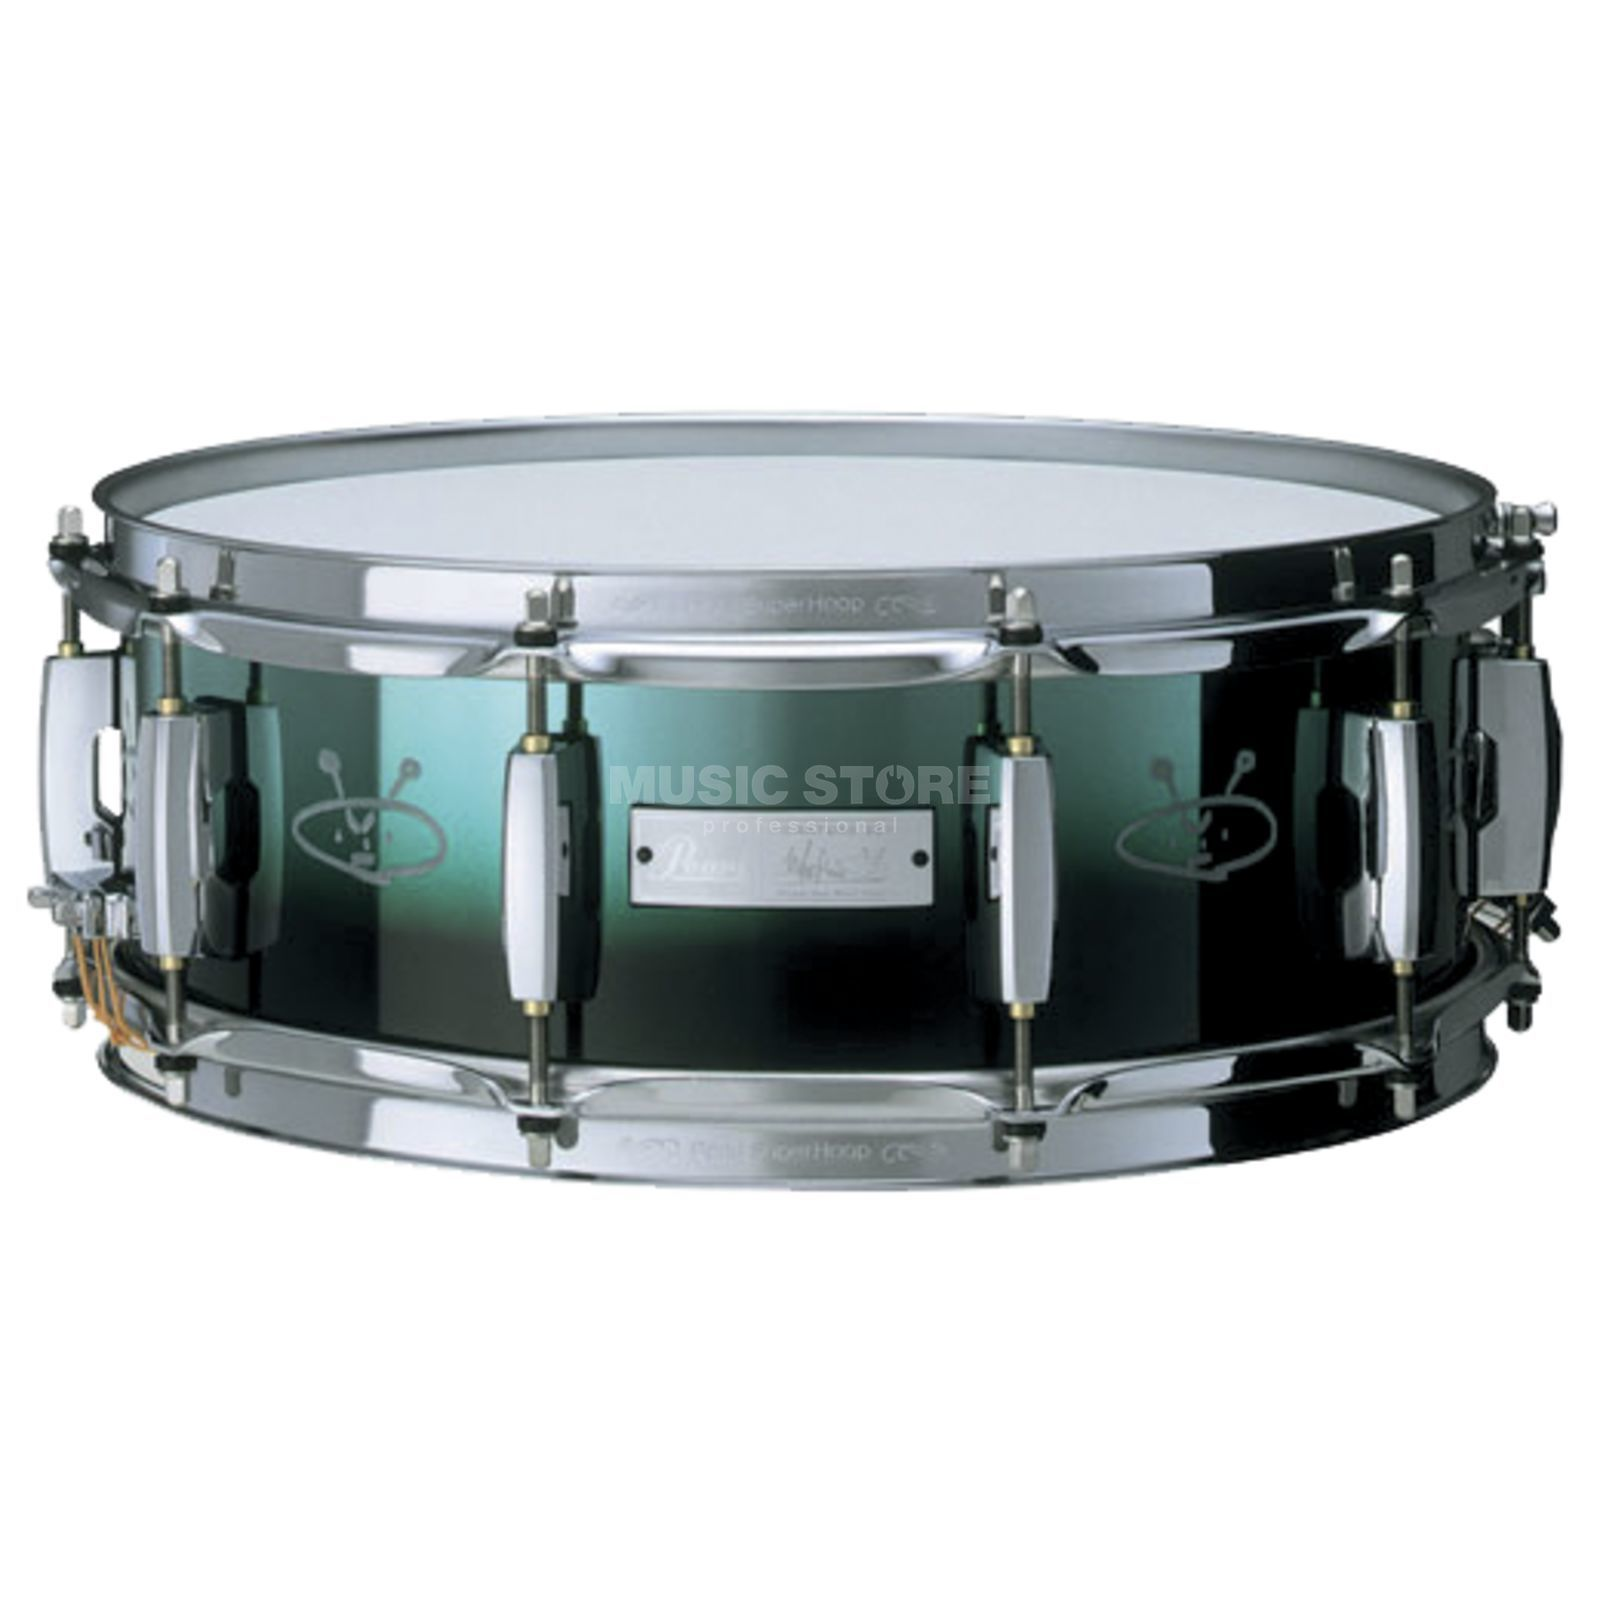 "Pearl MR1450 Morgan Rose Snare 14""x5"", Steel Produktbild"